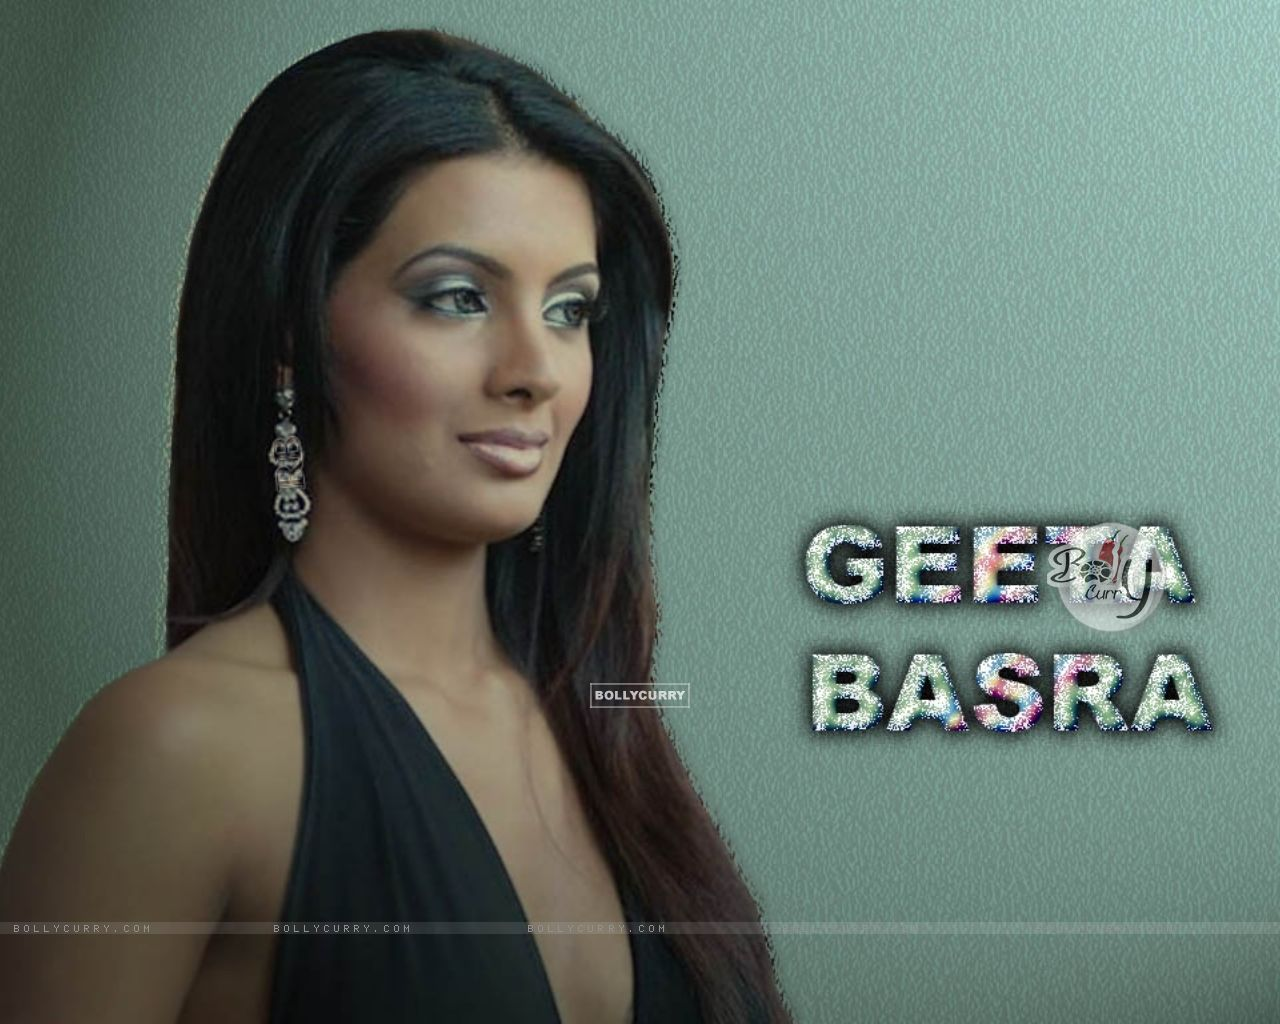 ... Basra wallpapers,Geeta Basra Pictures, Geeta Basra Mobile Wallpapers